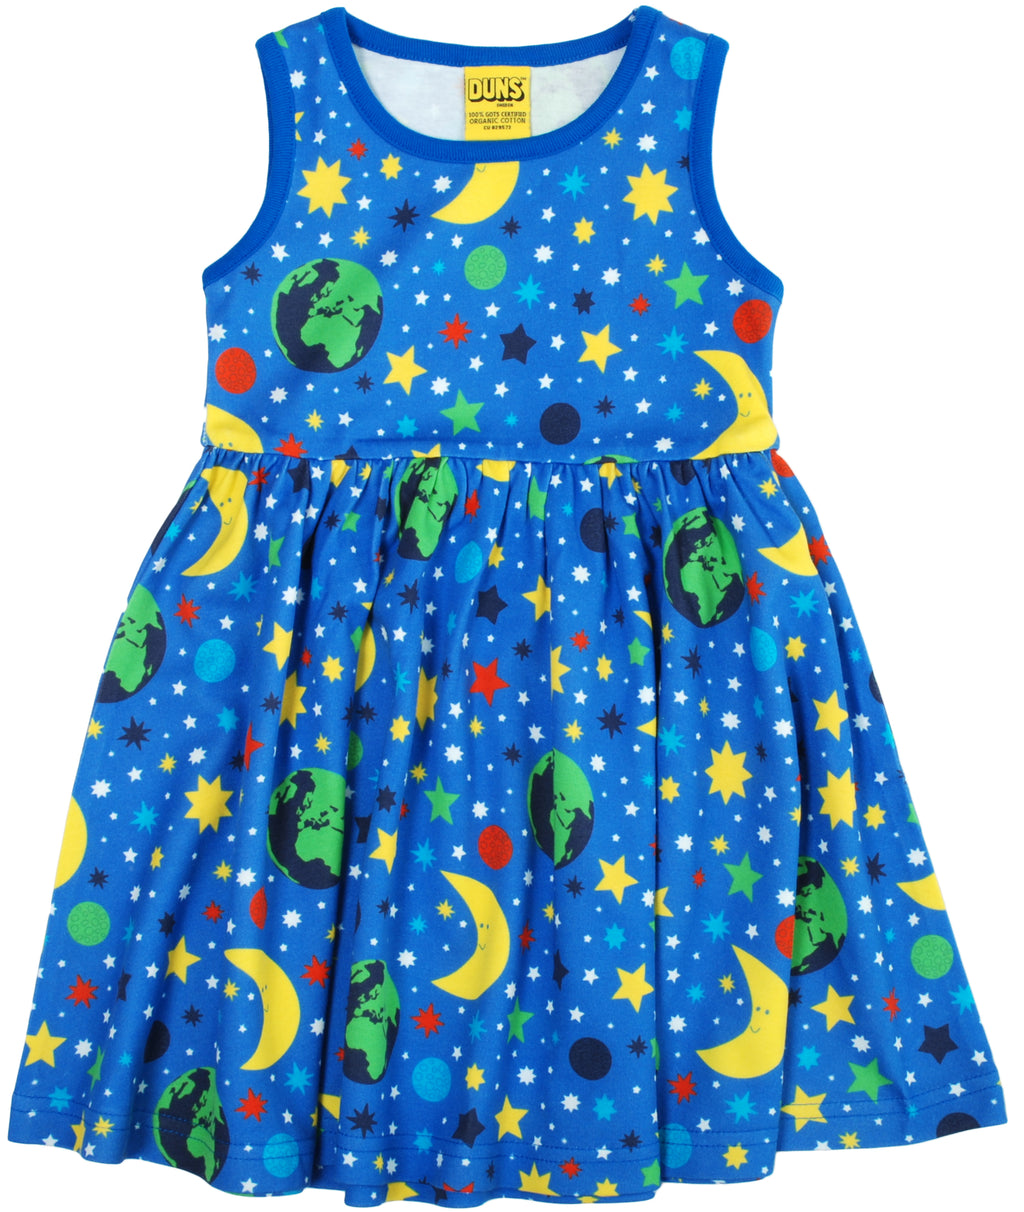 DUNS organic cotton sleeveless twirly dress MOTHER EARTH/BLUE (158 ONLY)